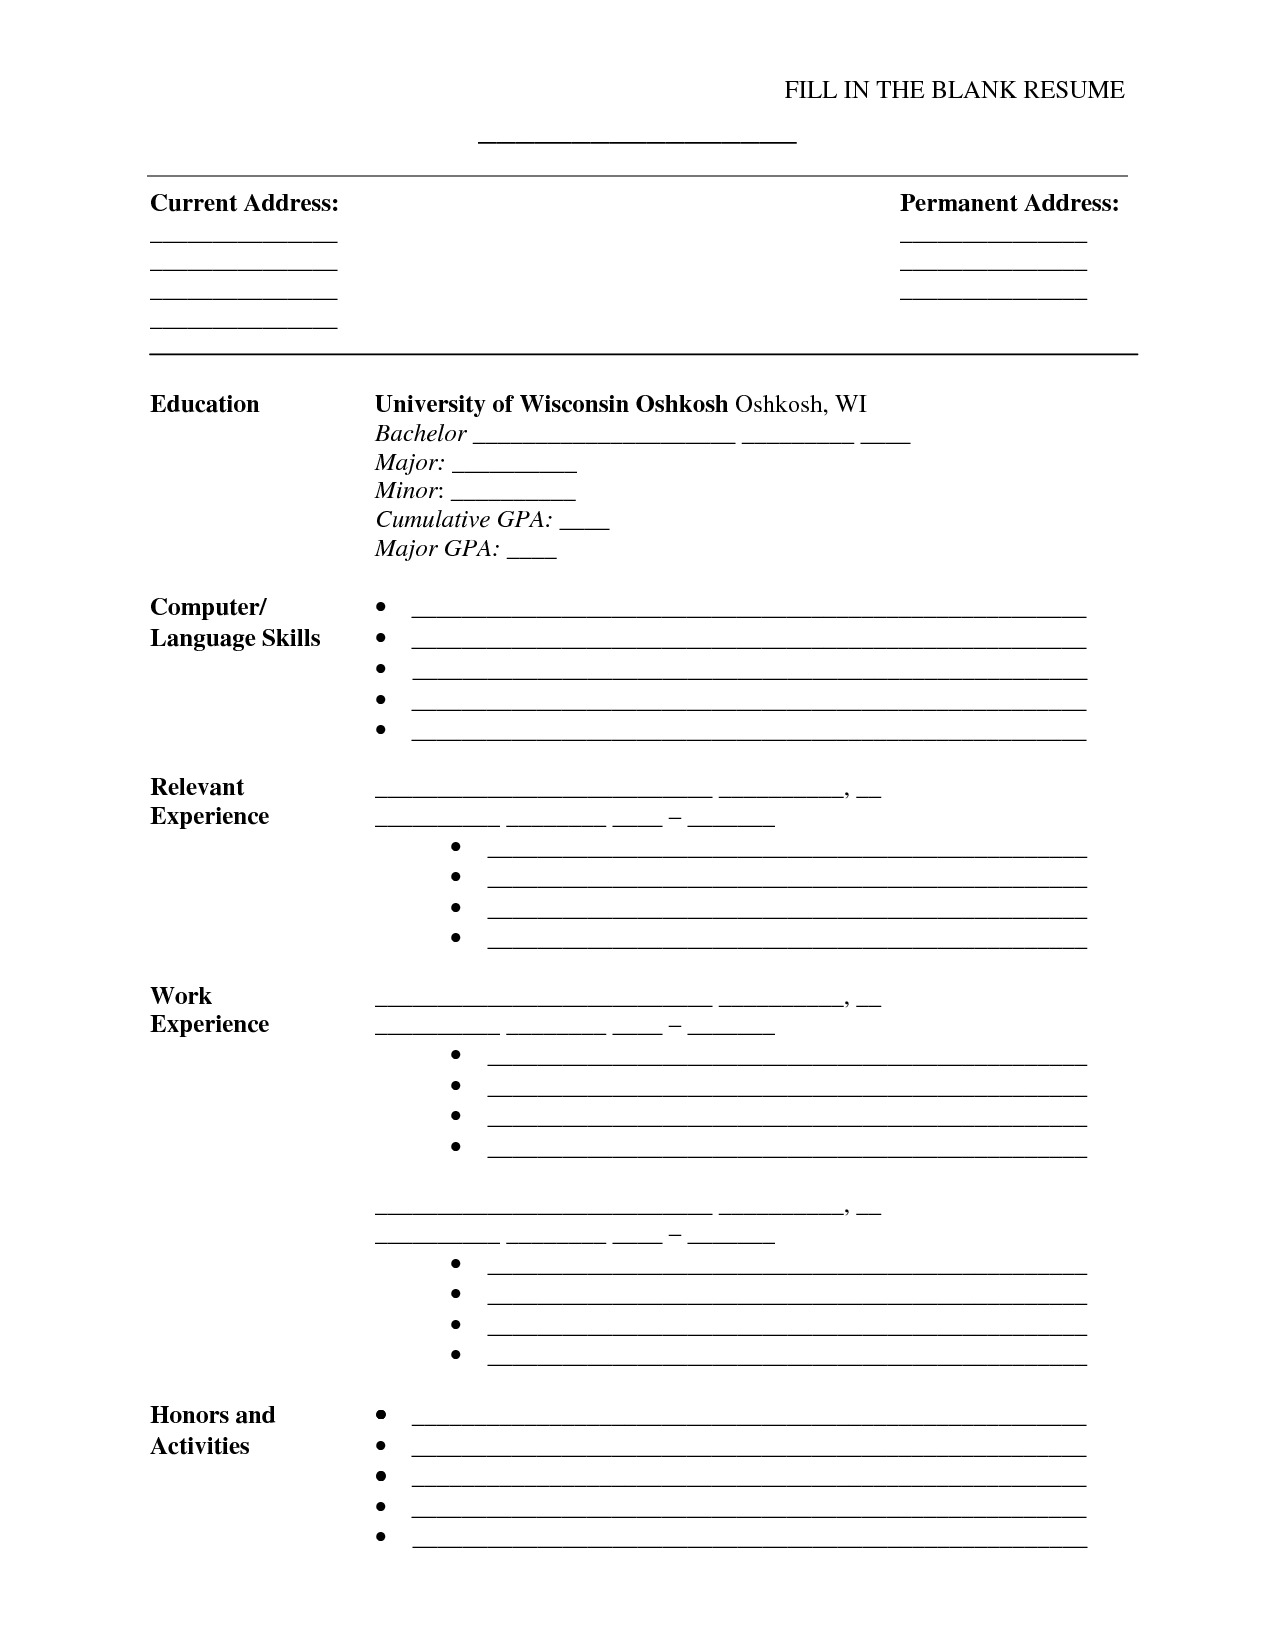 Free Blank Resume Templates Fill In The Blank Resume Pdf  Httpwwwresumecareerfill